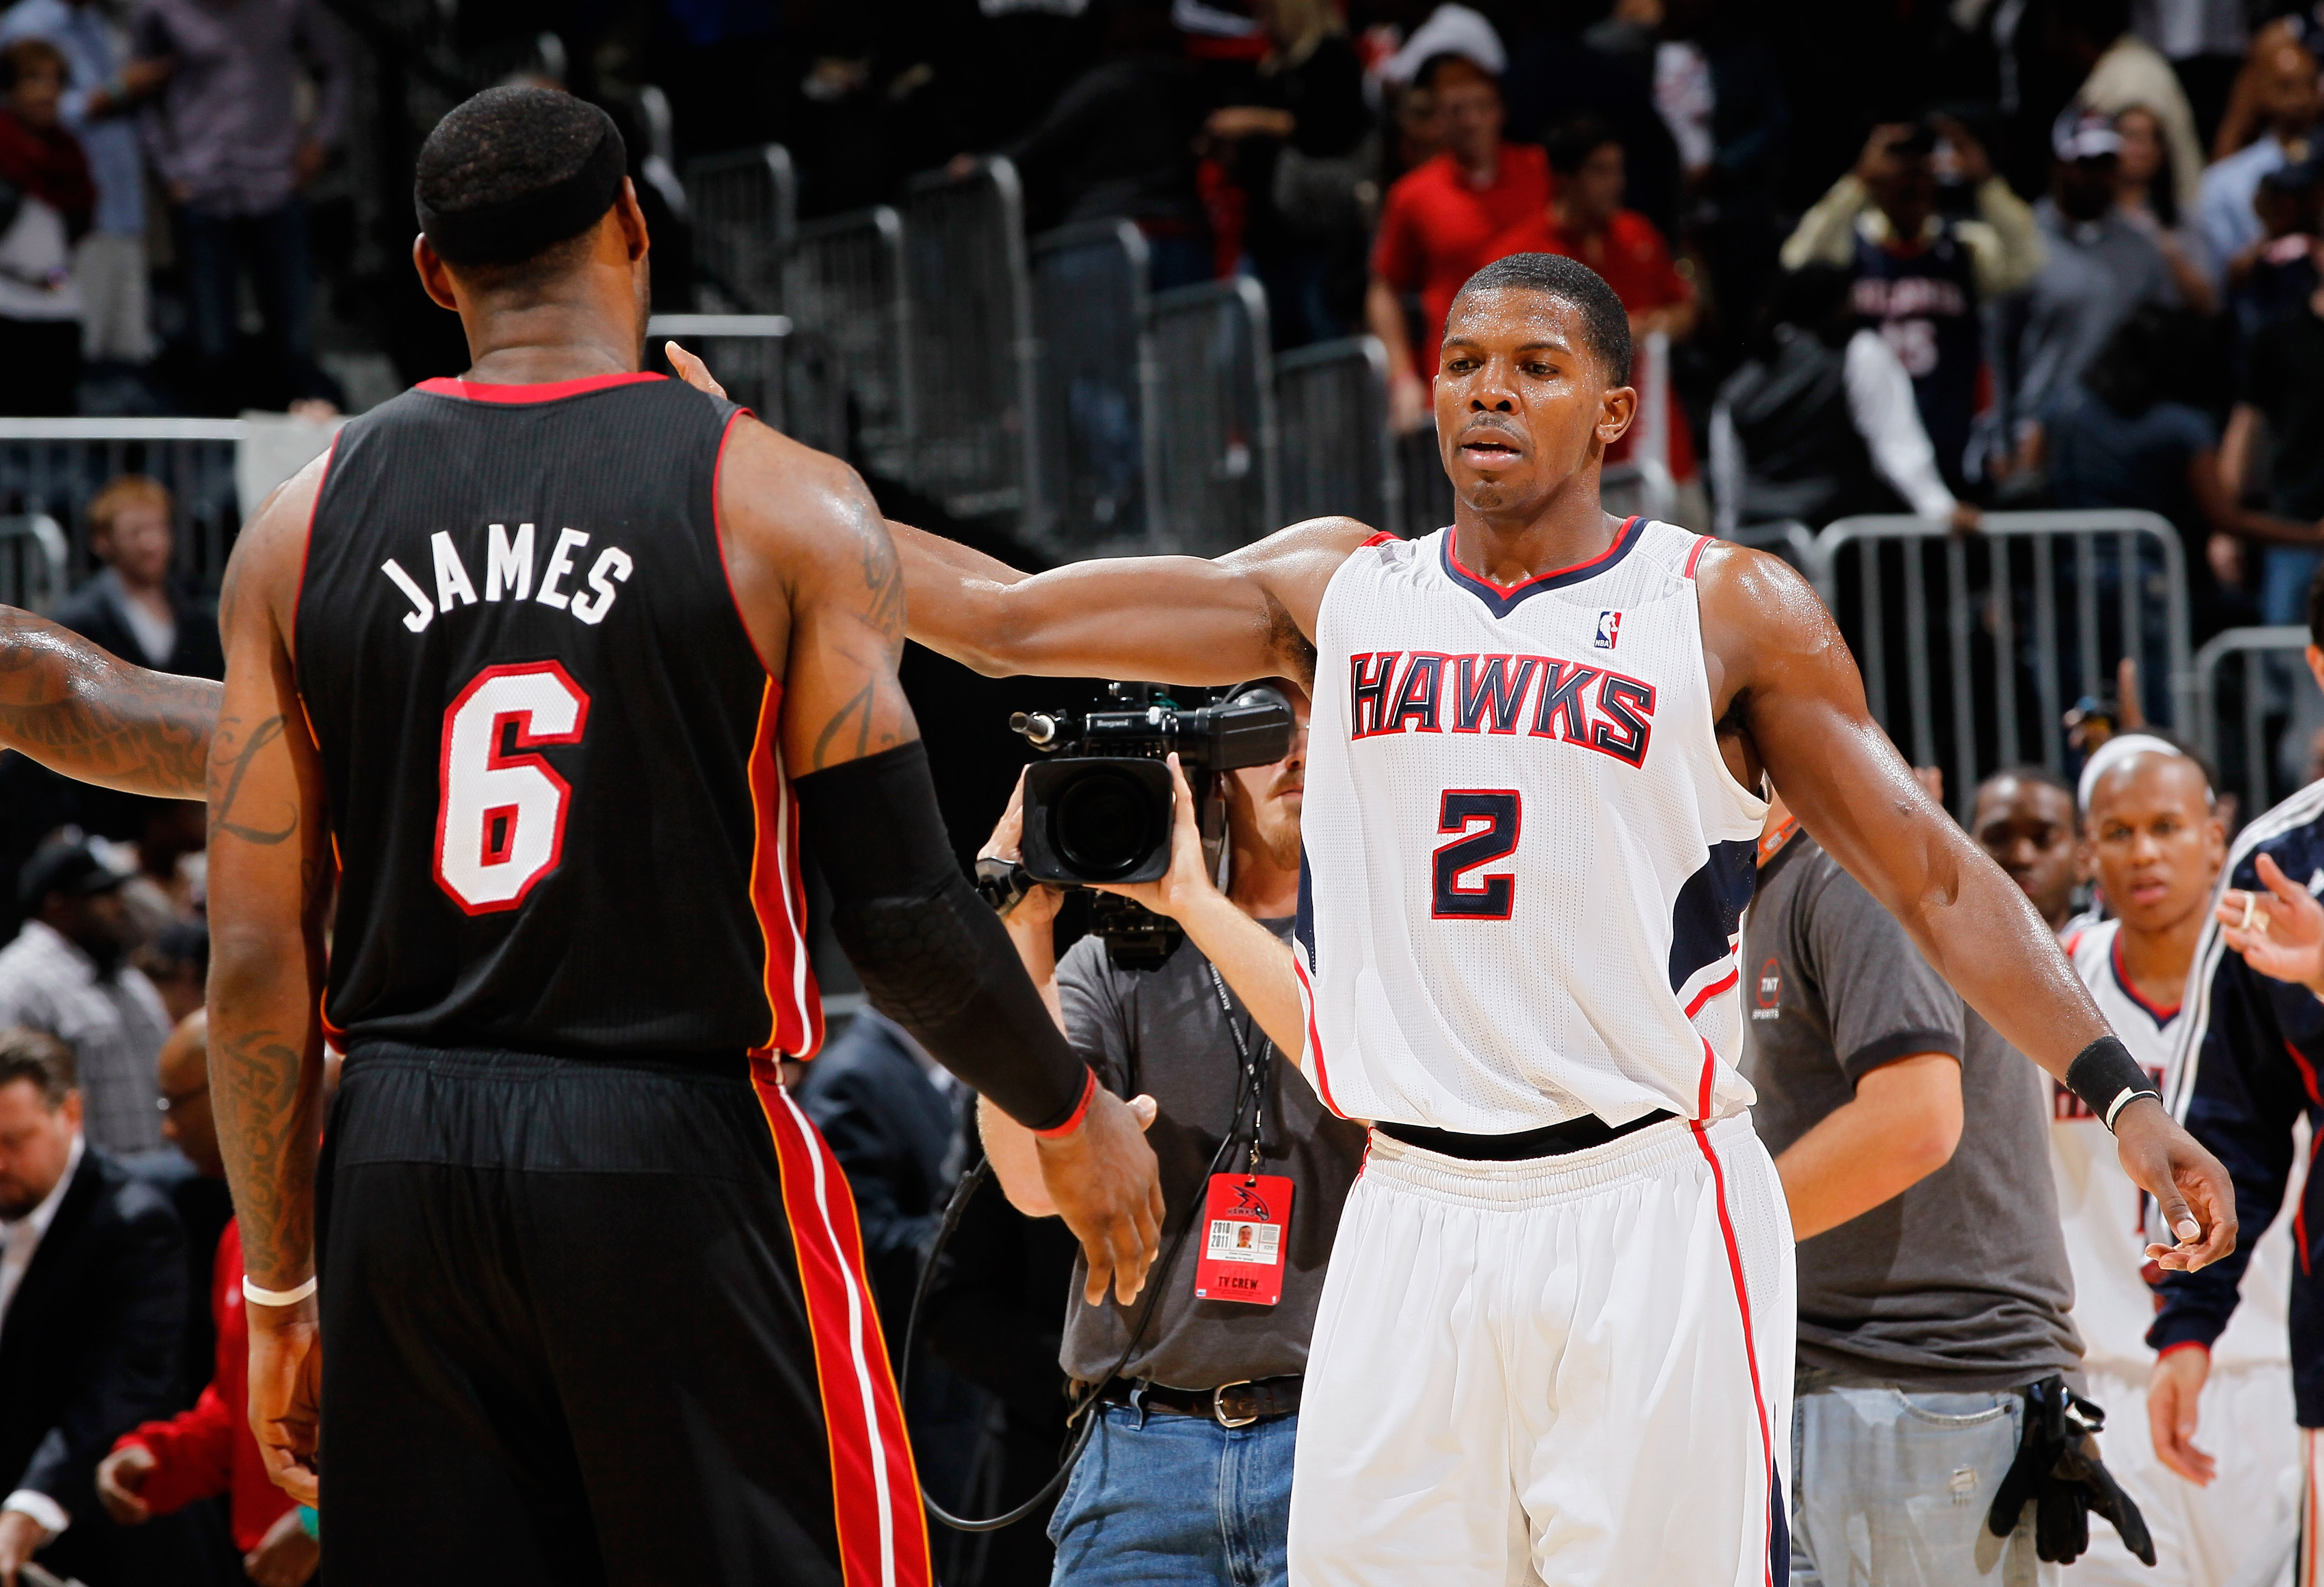 ATLANTA - OCTOBER 21:  Joe Johnson #2 of the Atlanta Hawks walks over to hug LeBron James #6 of the Miami Heat after the Hawks 98-89 win at Philips Arena on October 21, 2010 in Atlanta, Georgia.  (Photo by Kevin C. Cox/Getty Images)